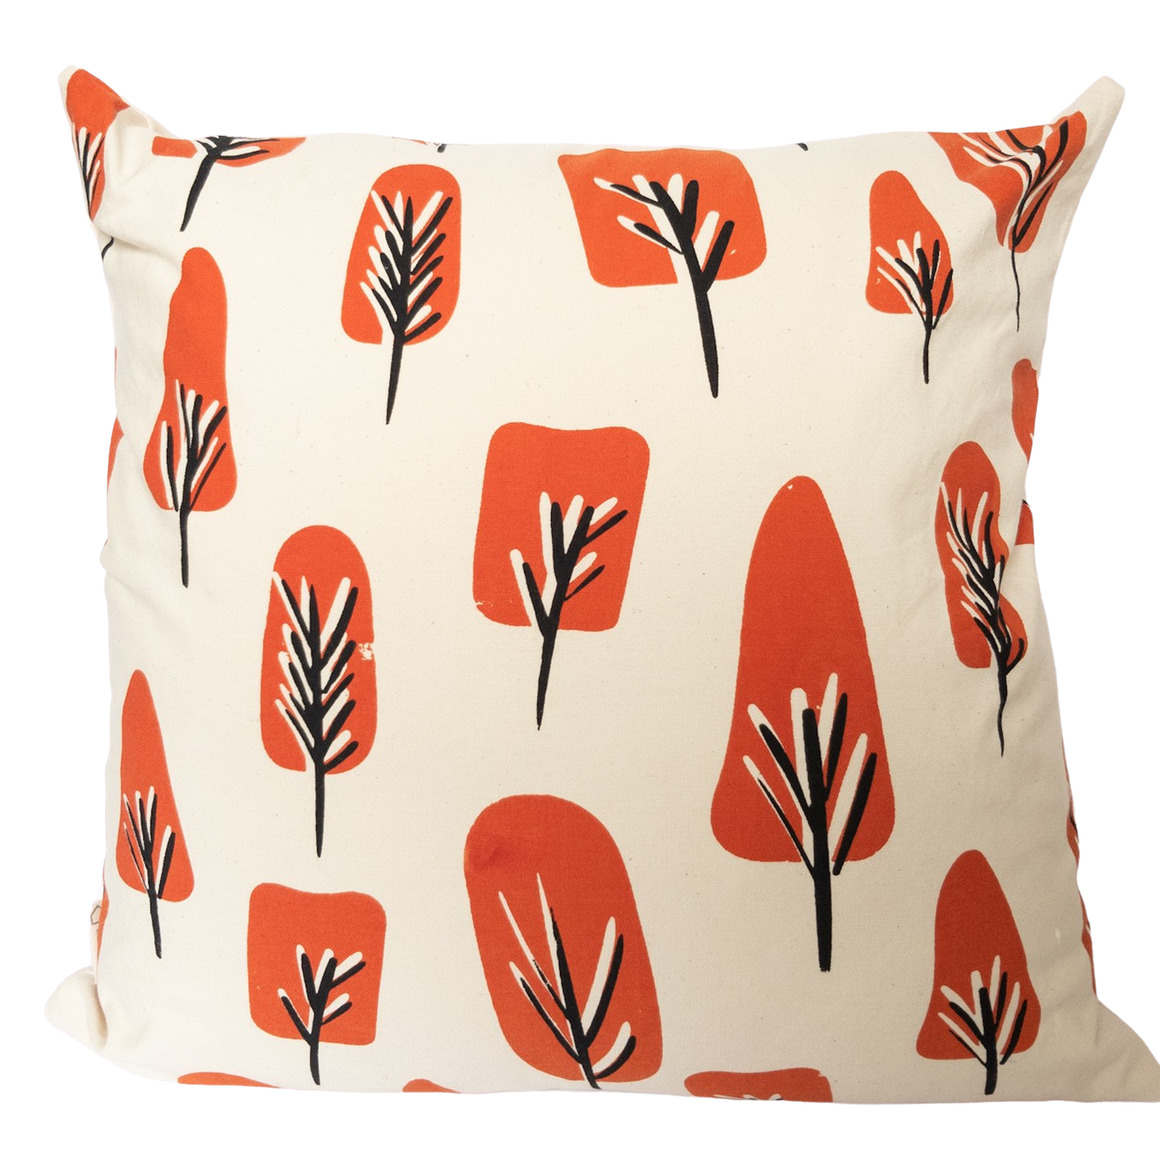 Abstract Tree Screen Printed, Hand Crafted Cushion- 3 colour ways-Cover Only | Trada Marketplace